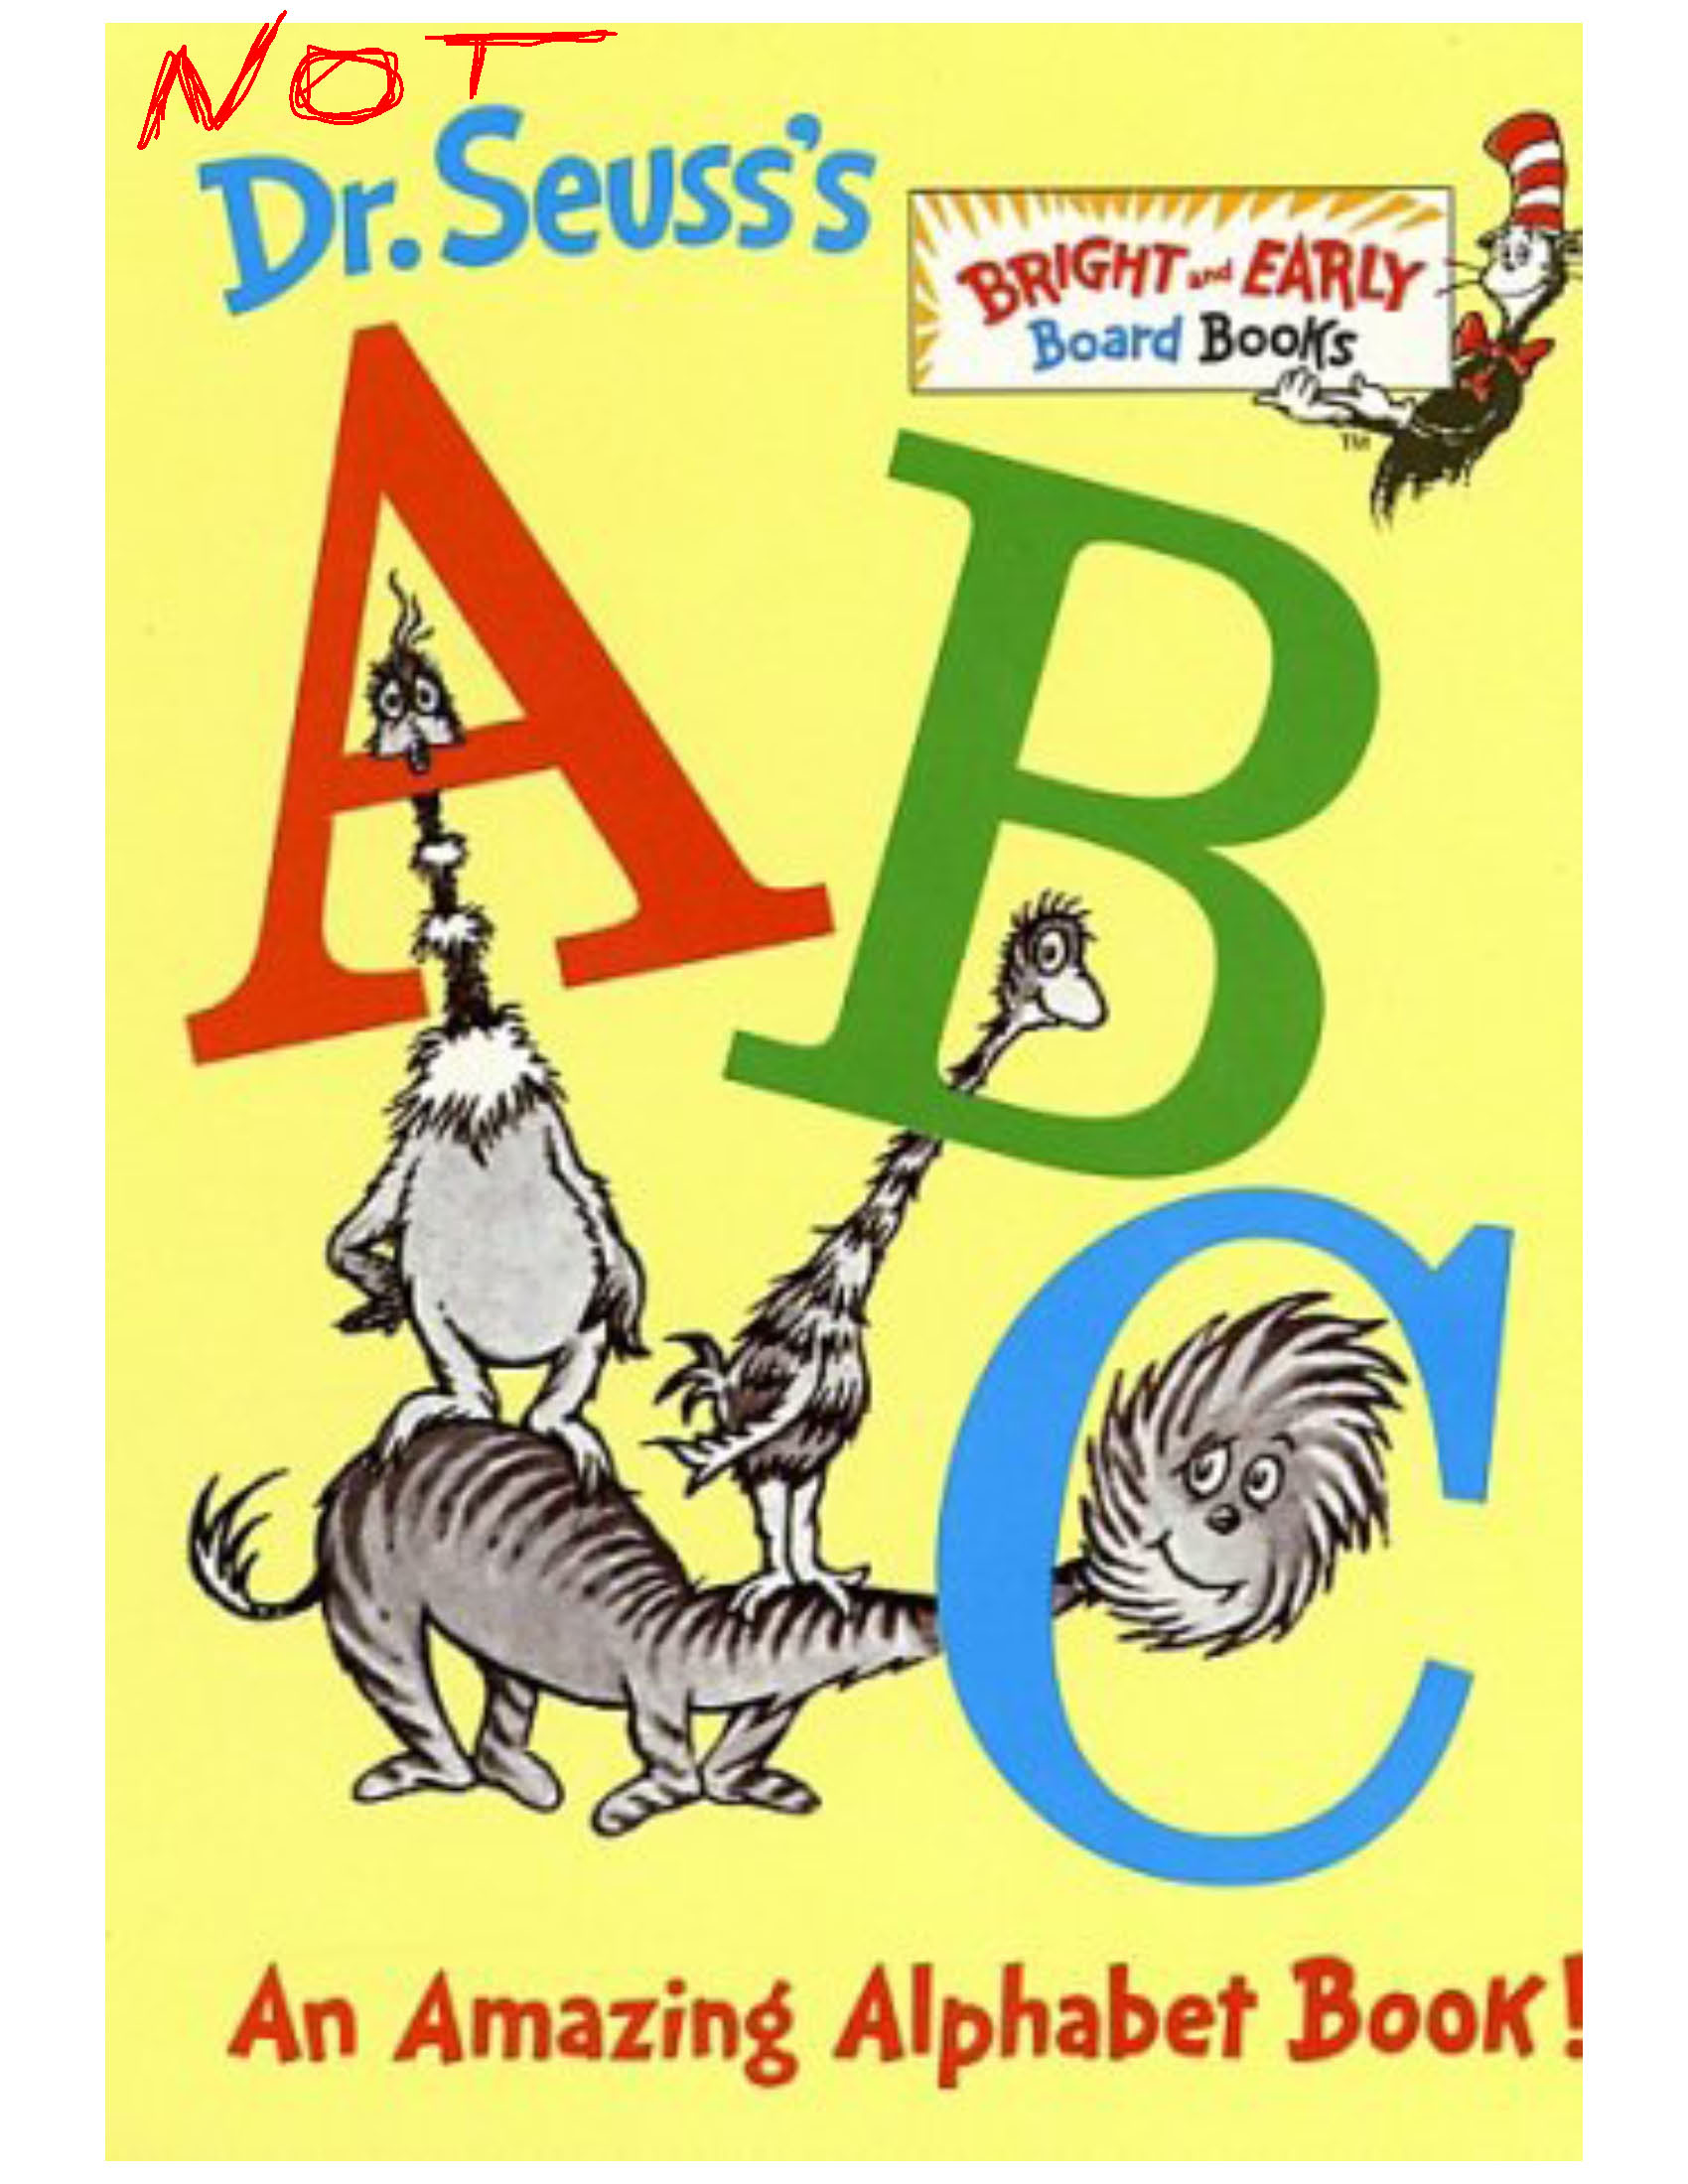 Beware Board Books Or I Owe Dr Seuss An Xpology